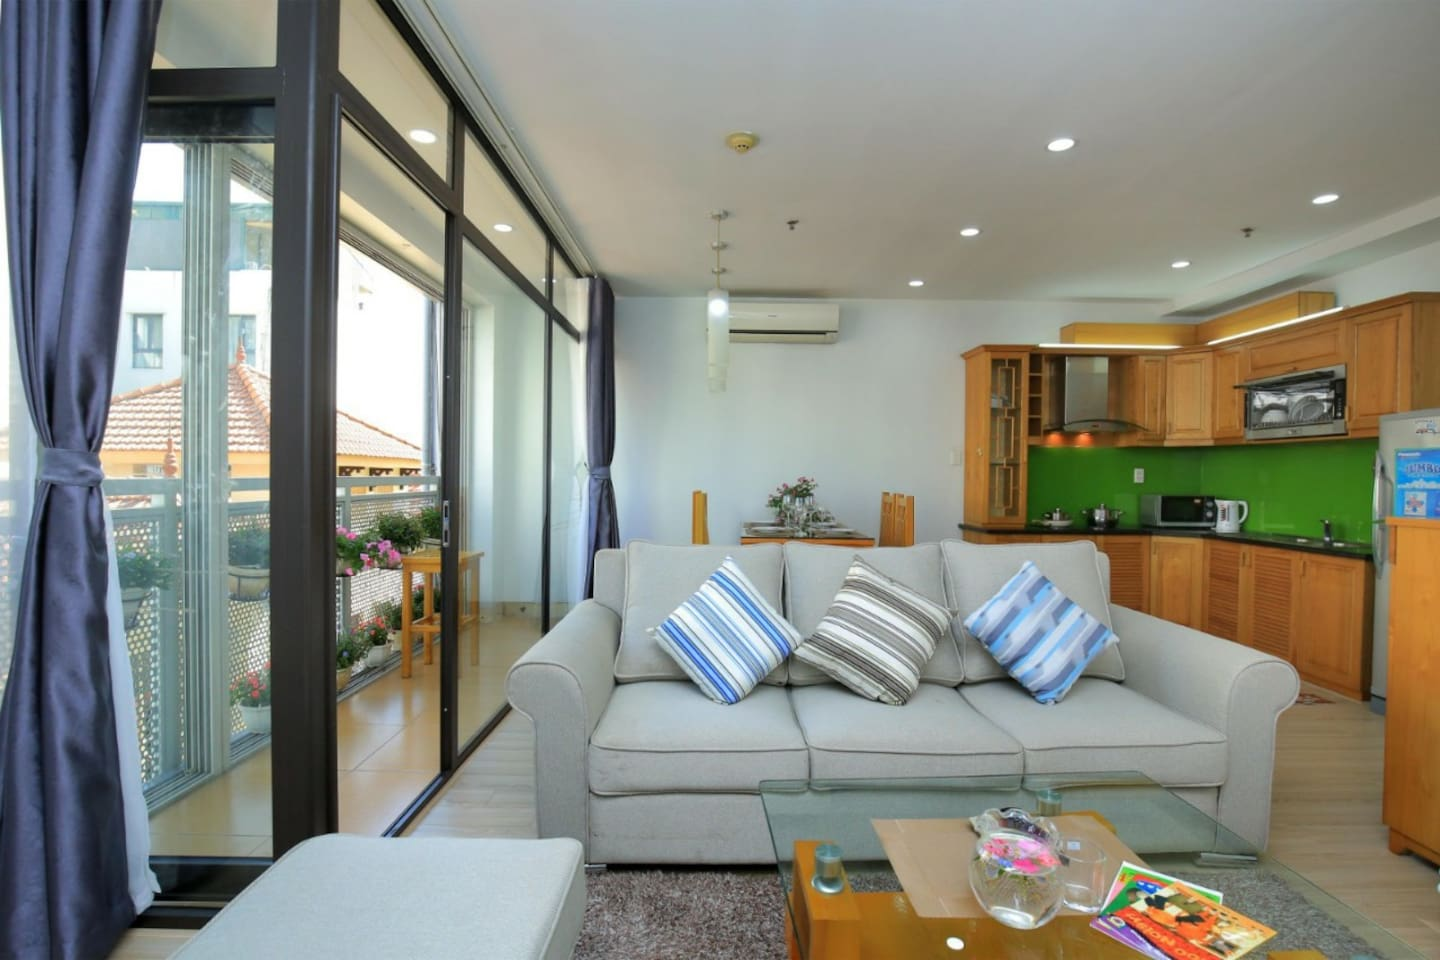 61. comfortable sofa in living room. And modern cooking facilities plus overview bacony